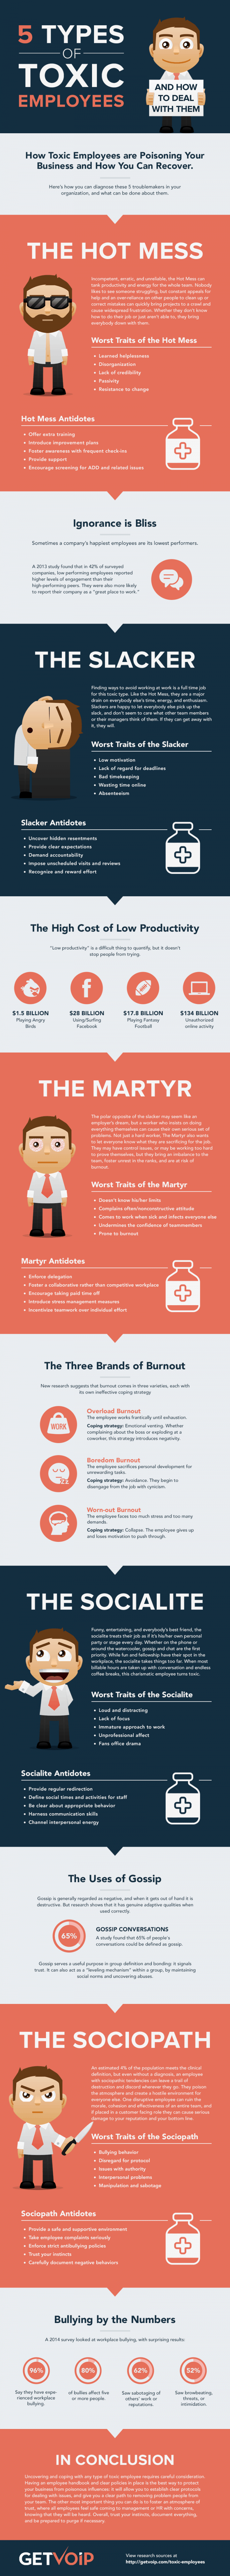 5 Types of Toxic Employees Infographic